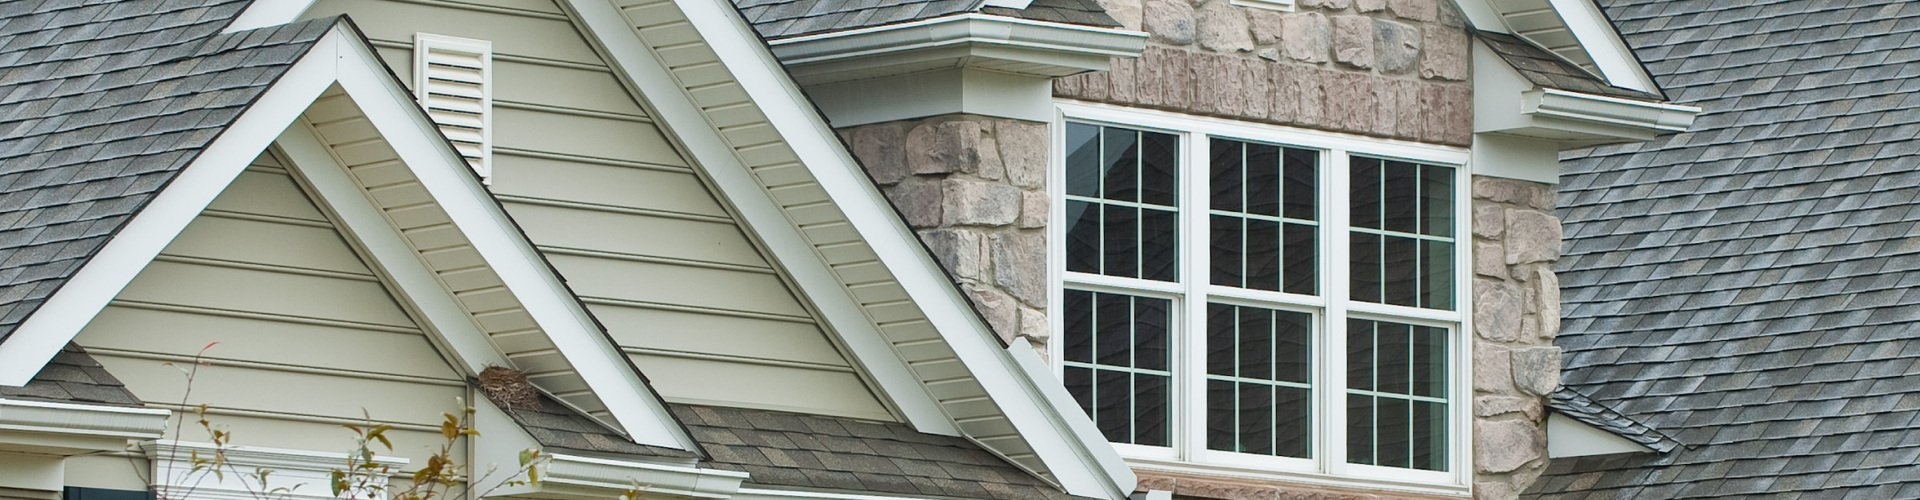 ovation-siding